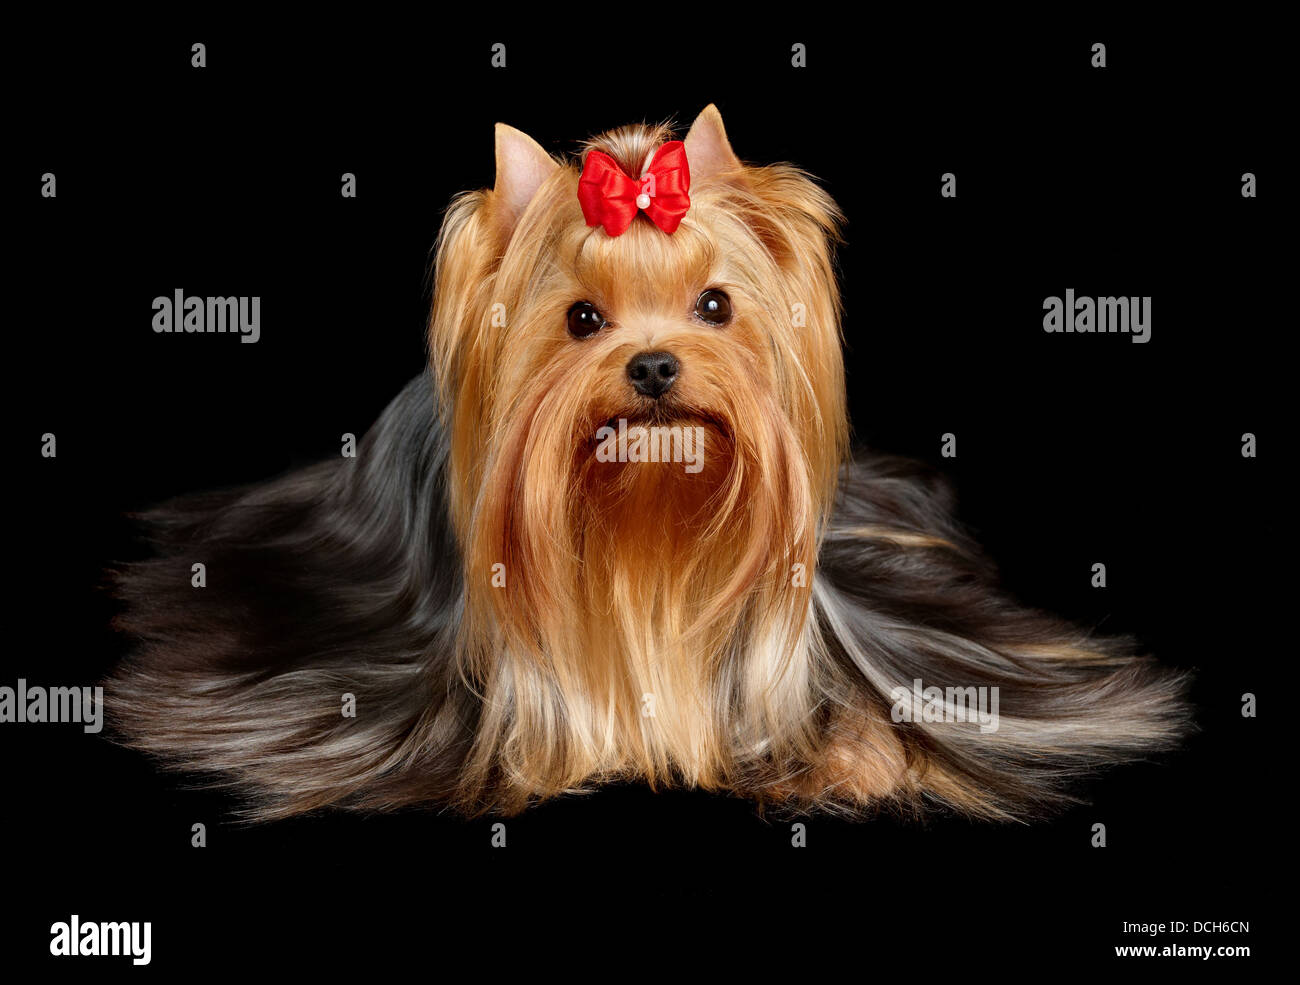 The Yorkshire Terrier on black background - Stock Image